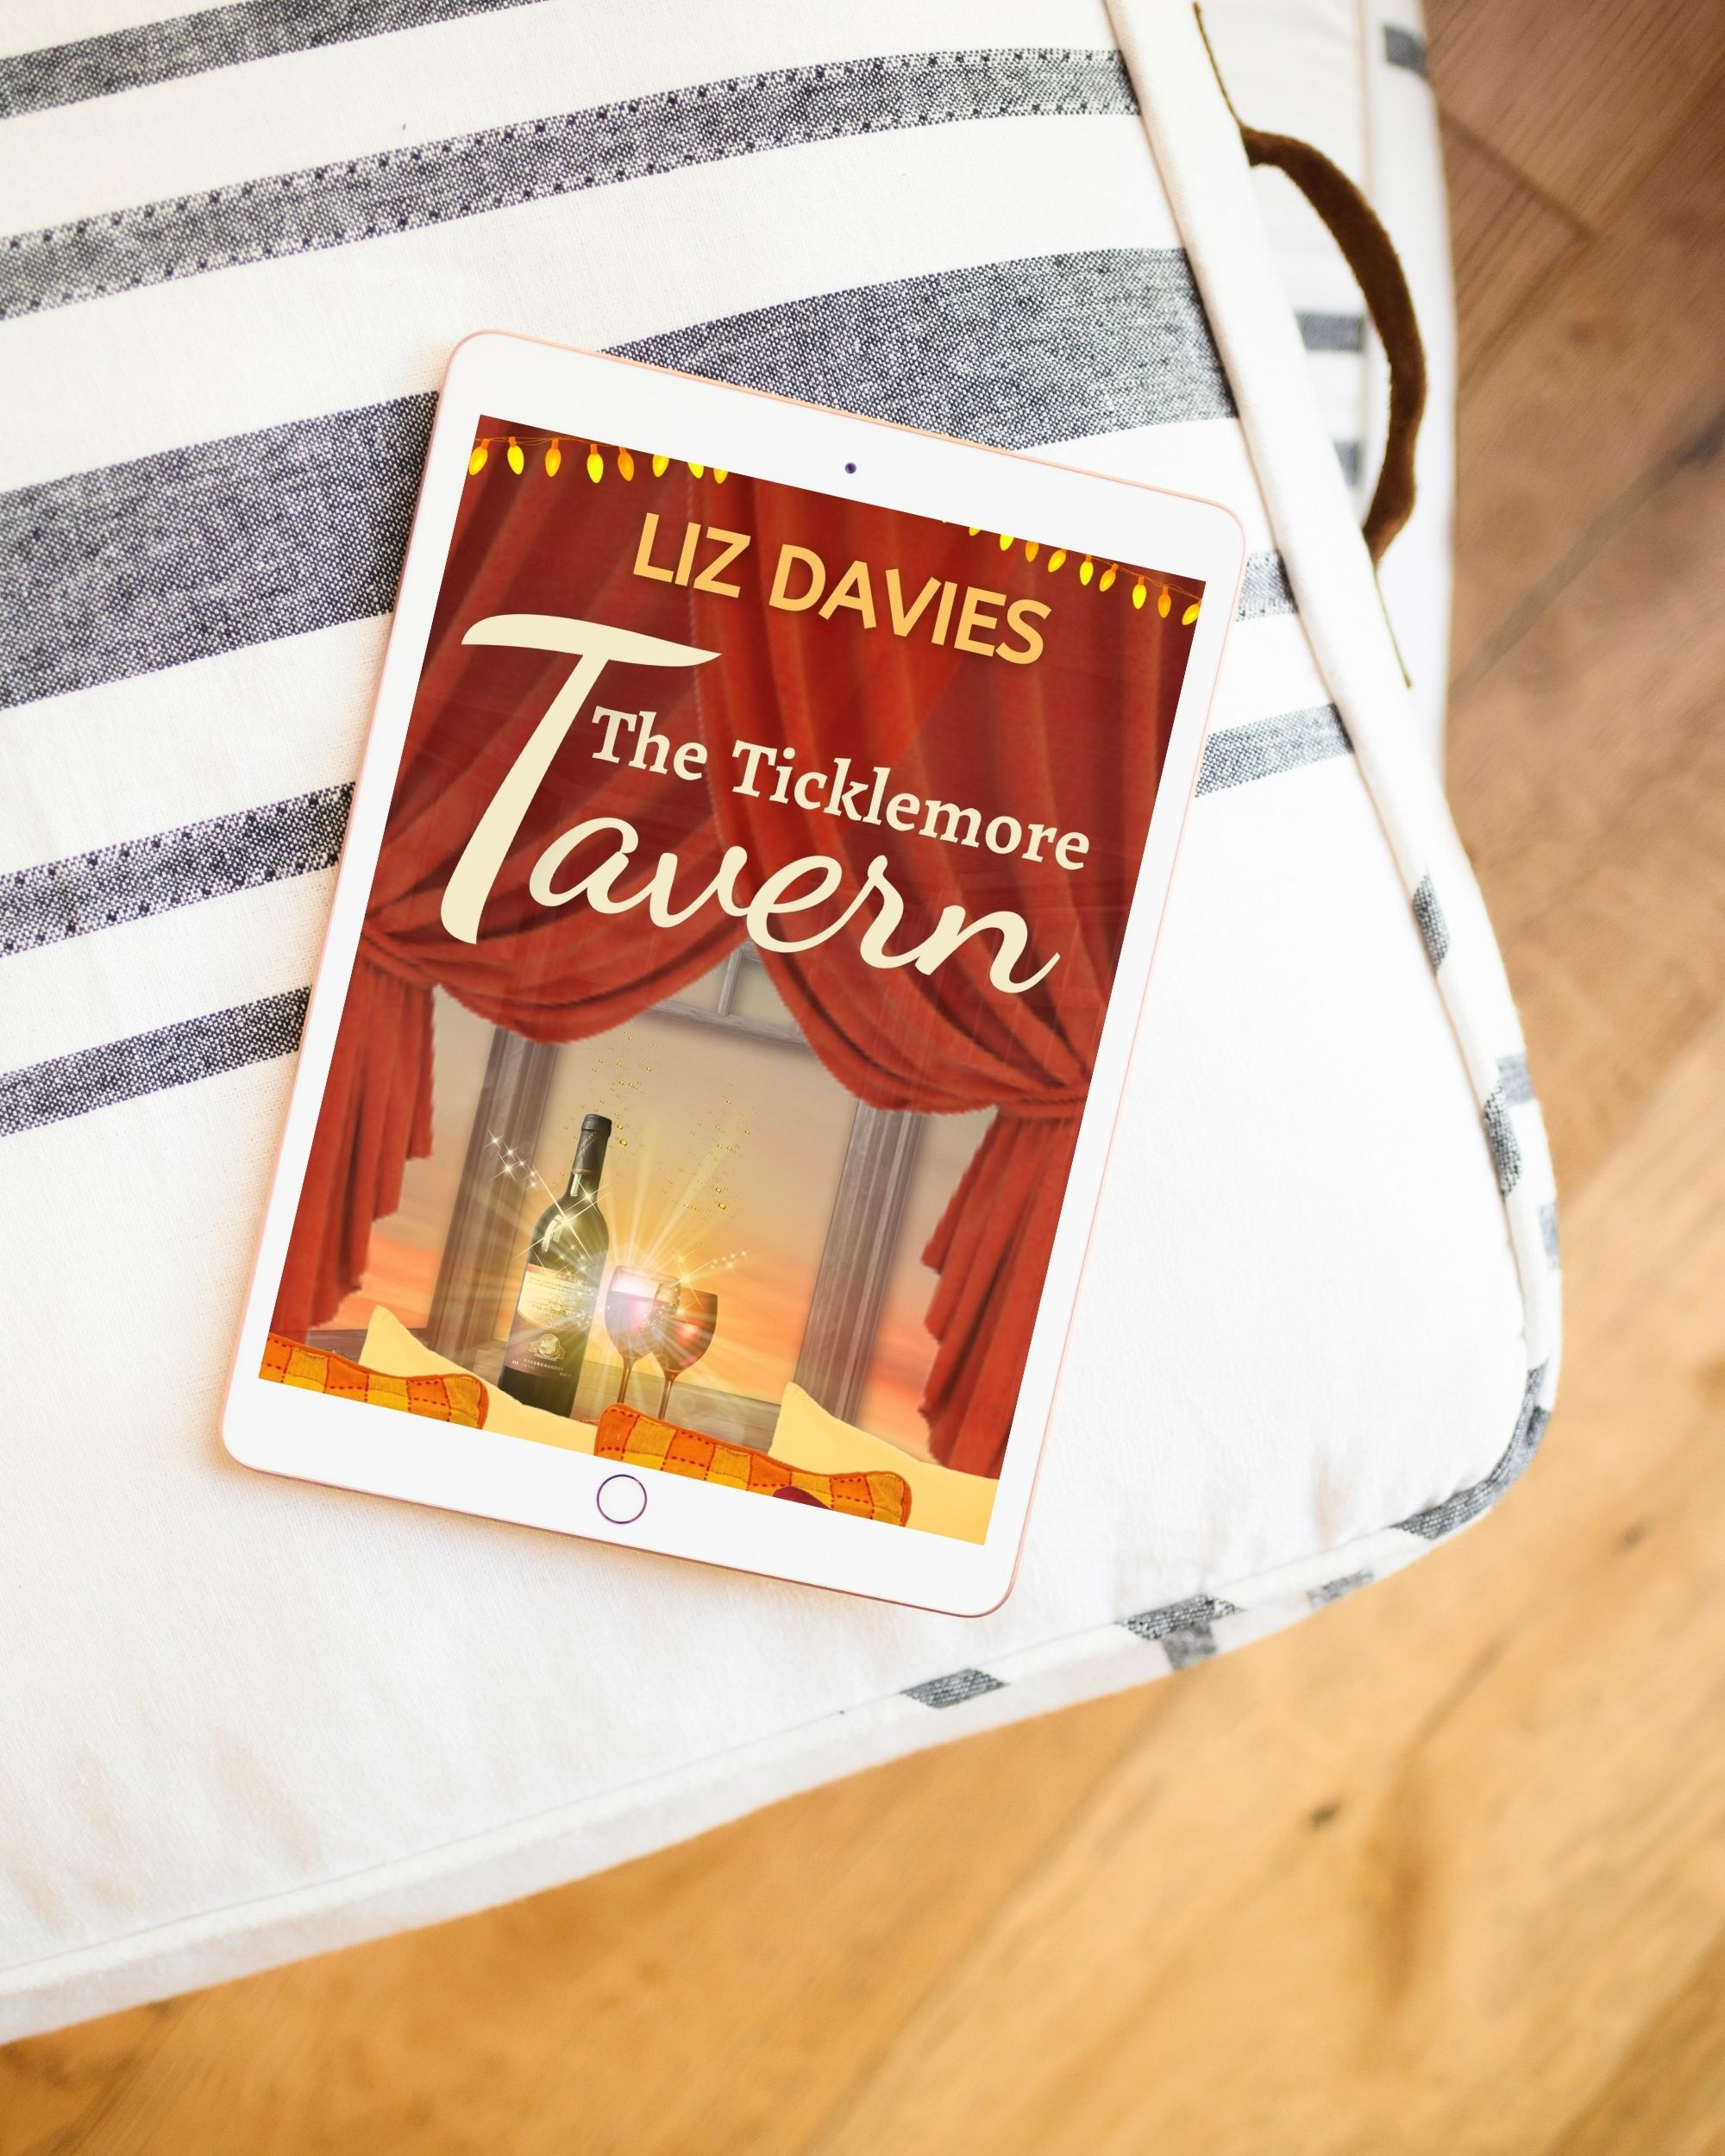 The Ticklemore Tavern by Liz Davies Review - Wickedly romance